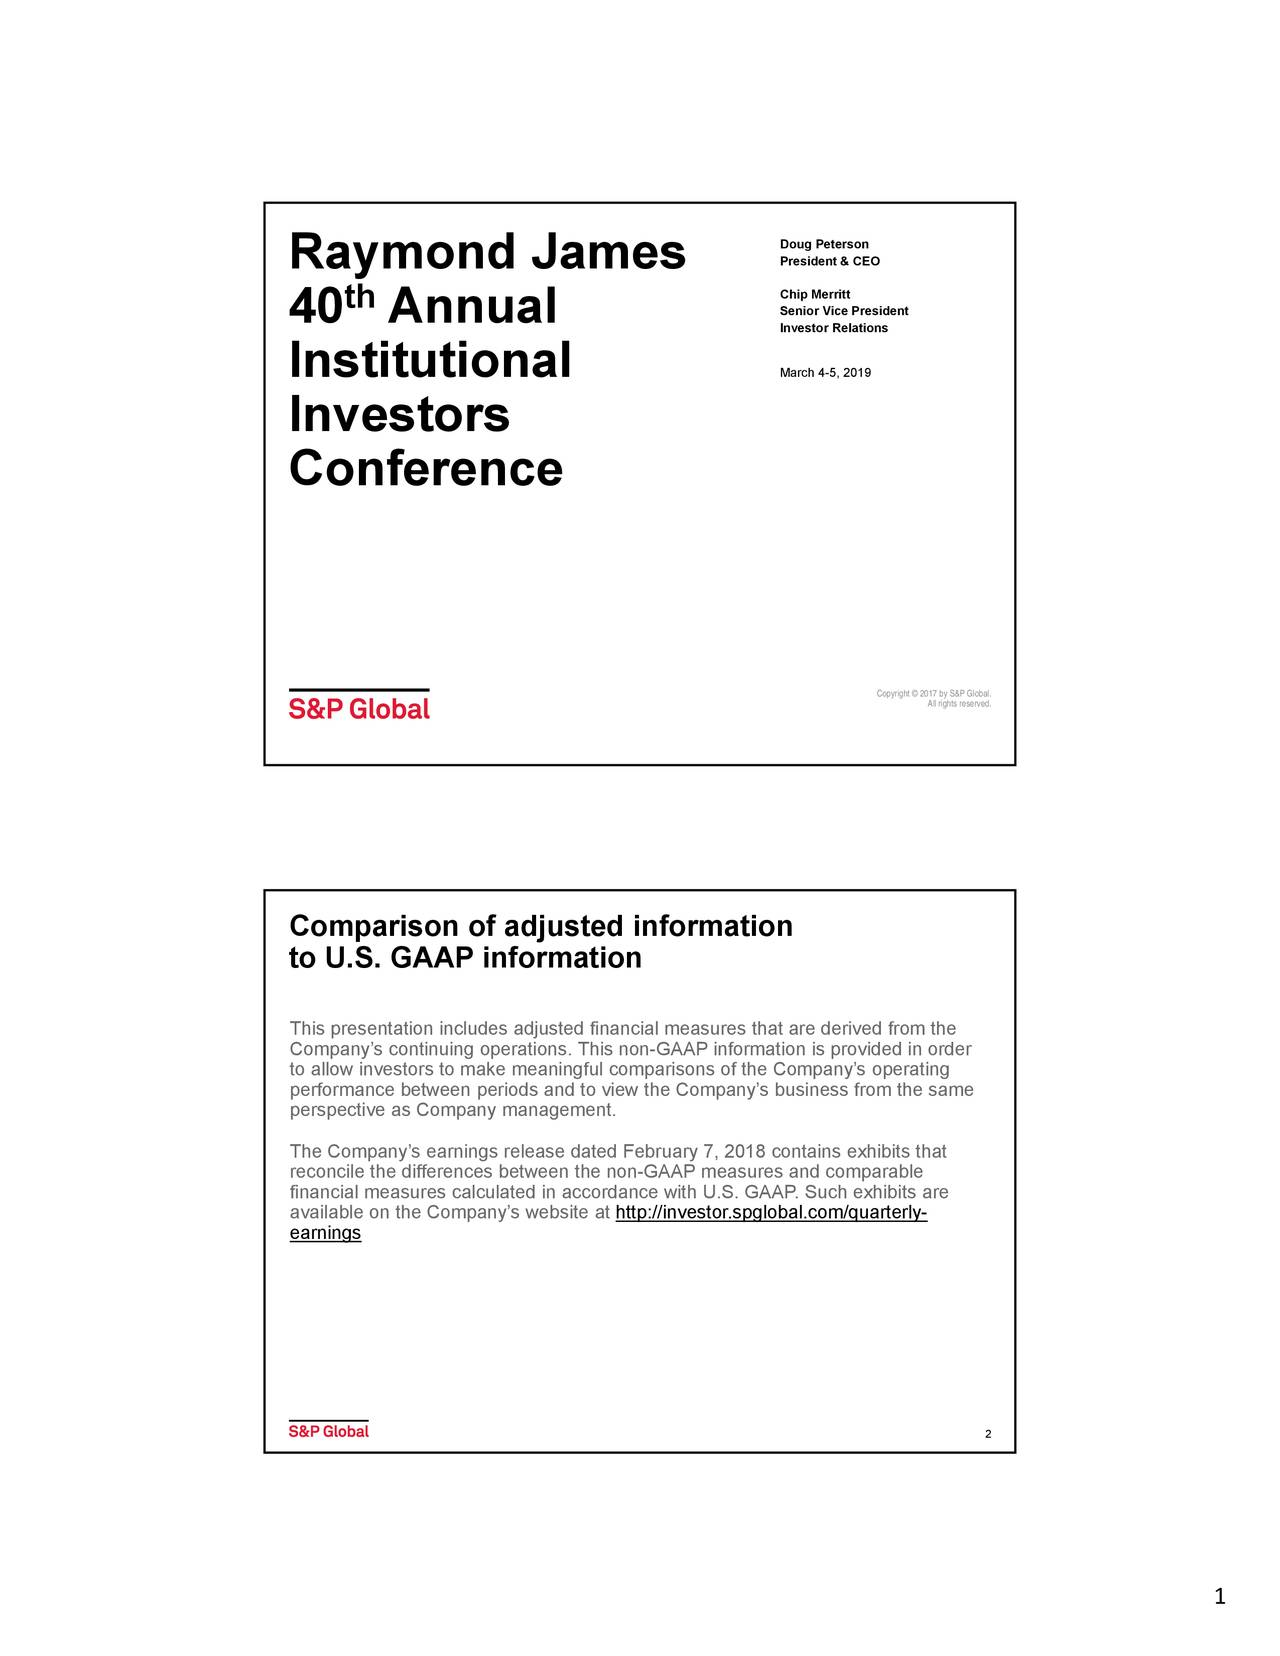 th Senior Vice President 40 Annual Investor Relations Institutional March 4-5, 2019 Investors Conference Copyright © 2017 by S&P Global. All rights reserved. Comparison of adjusted information to U.S. GAAP information This presentation includes adjusted financial measures that are derived from the to allow investors to make meaningful comparisons of the Company's operatingder performance between periods and to view the Company's business from the same perspective as Company management. The Company's earnings release dated February 7, 2018 contains exhibits that reconcile the differences between the non-GAAP measures and comparable financial measures calculated in accordance with U.S. GAAP. Such exhibits are earningse on the Company's website at http://investor.spglobal.com/quarterly- 2 1